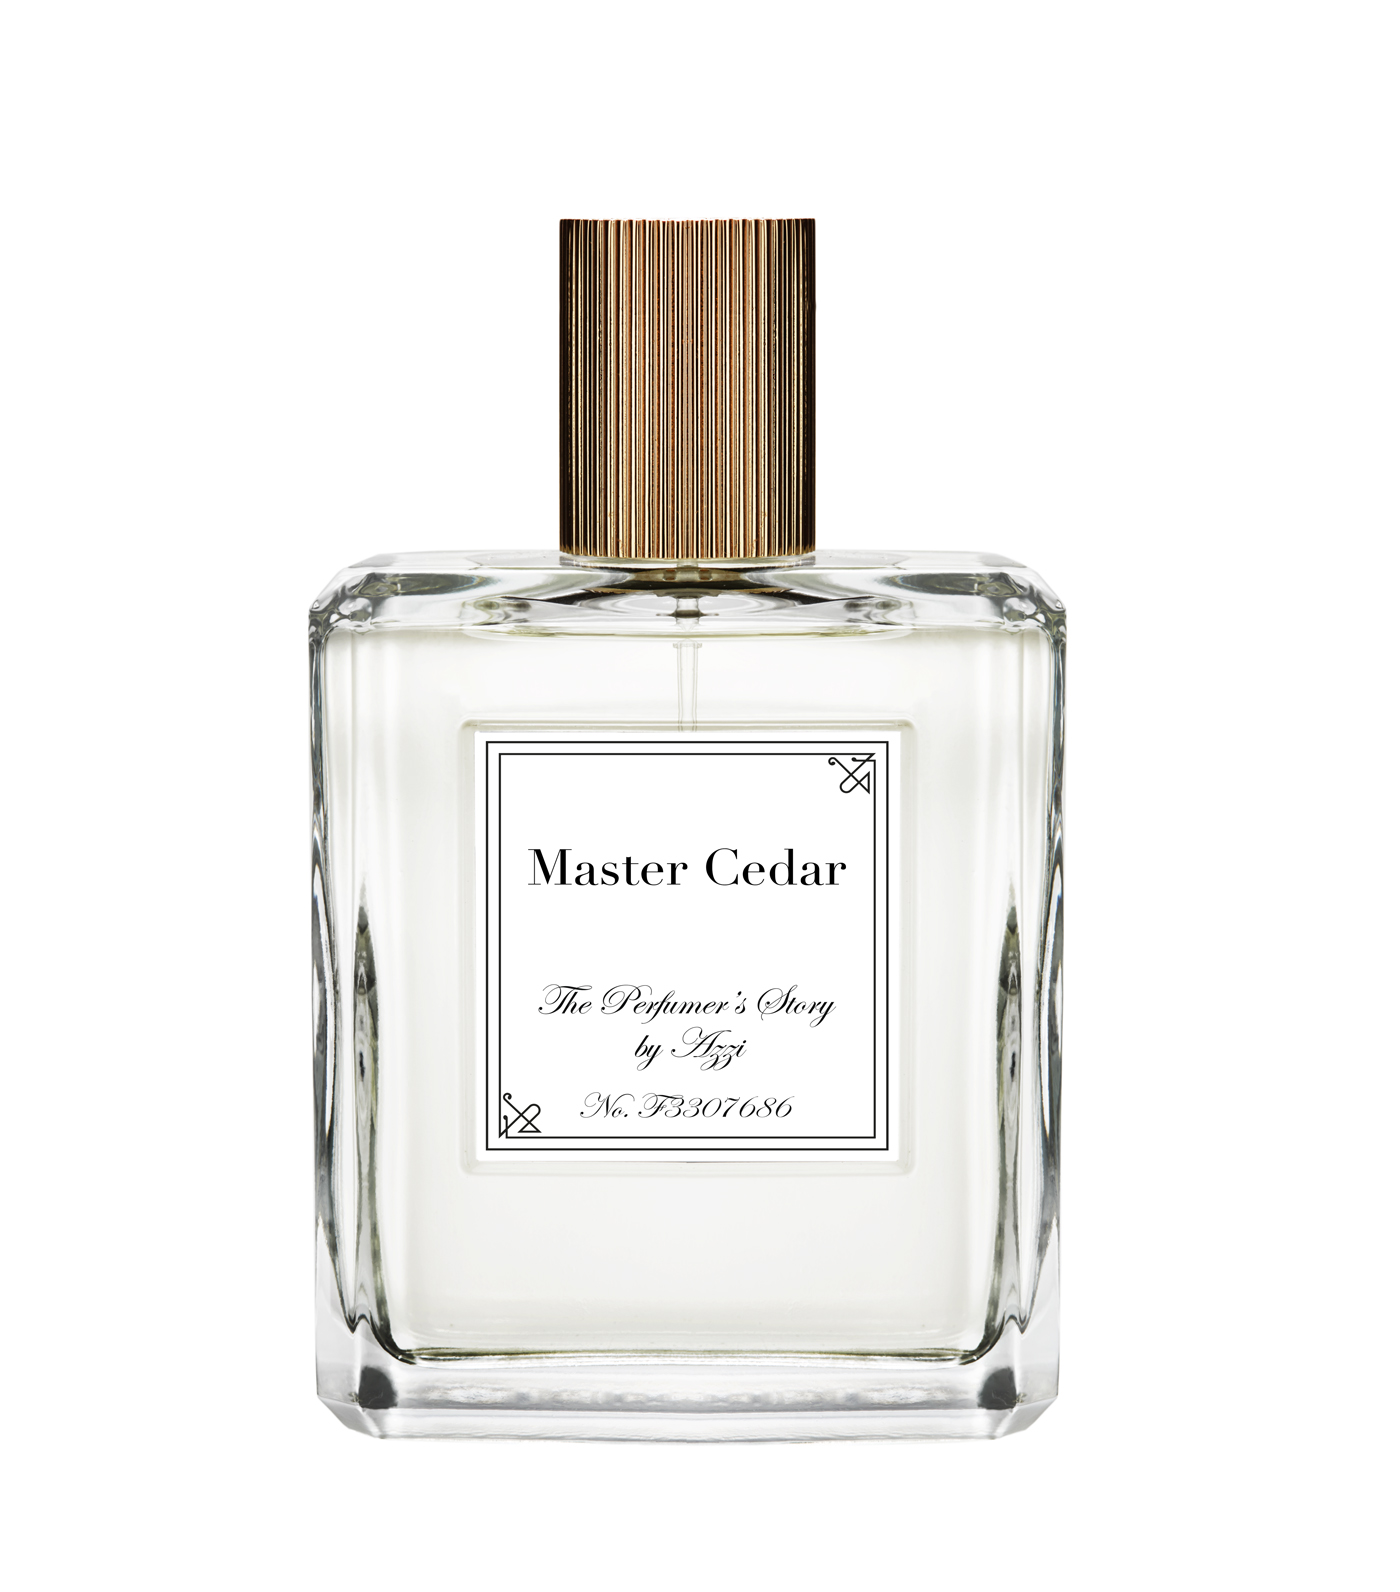 Master Cedar Eau De Parfum 150ml by The Perfumer's Story by Azzi on curated-crowd.com